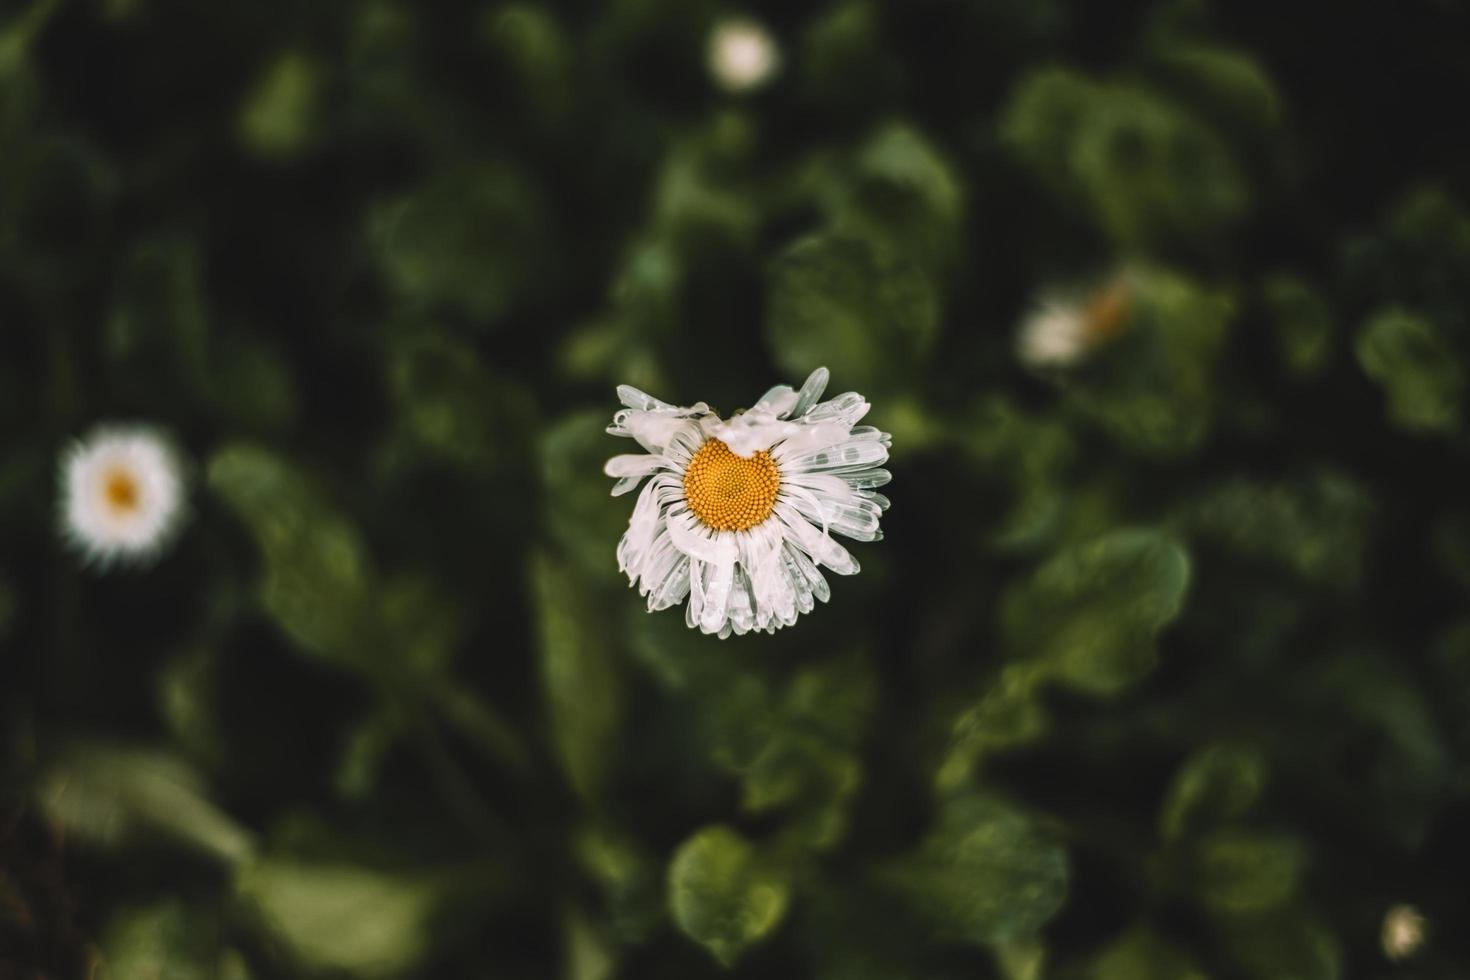 Top view of a worn daisy photo